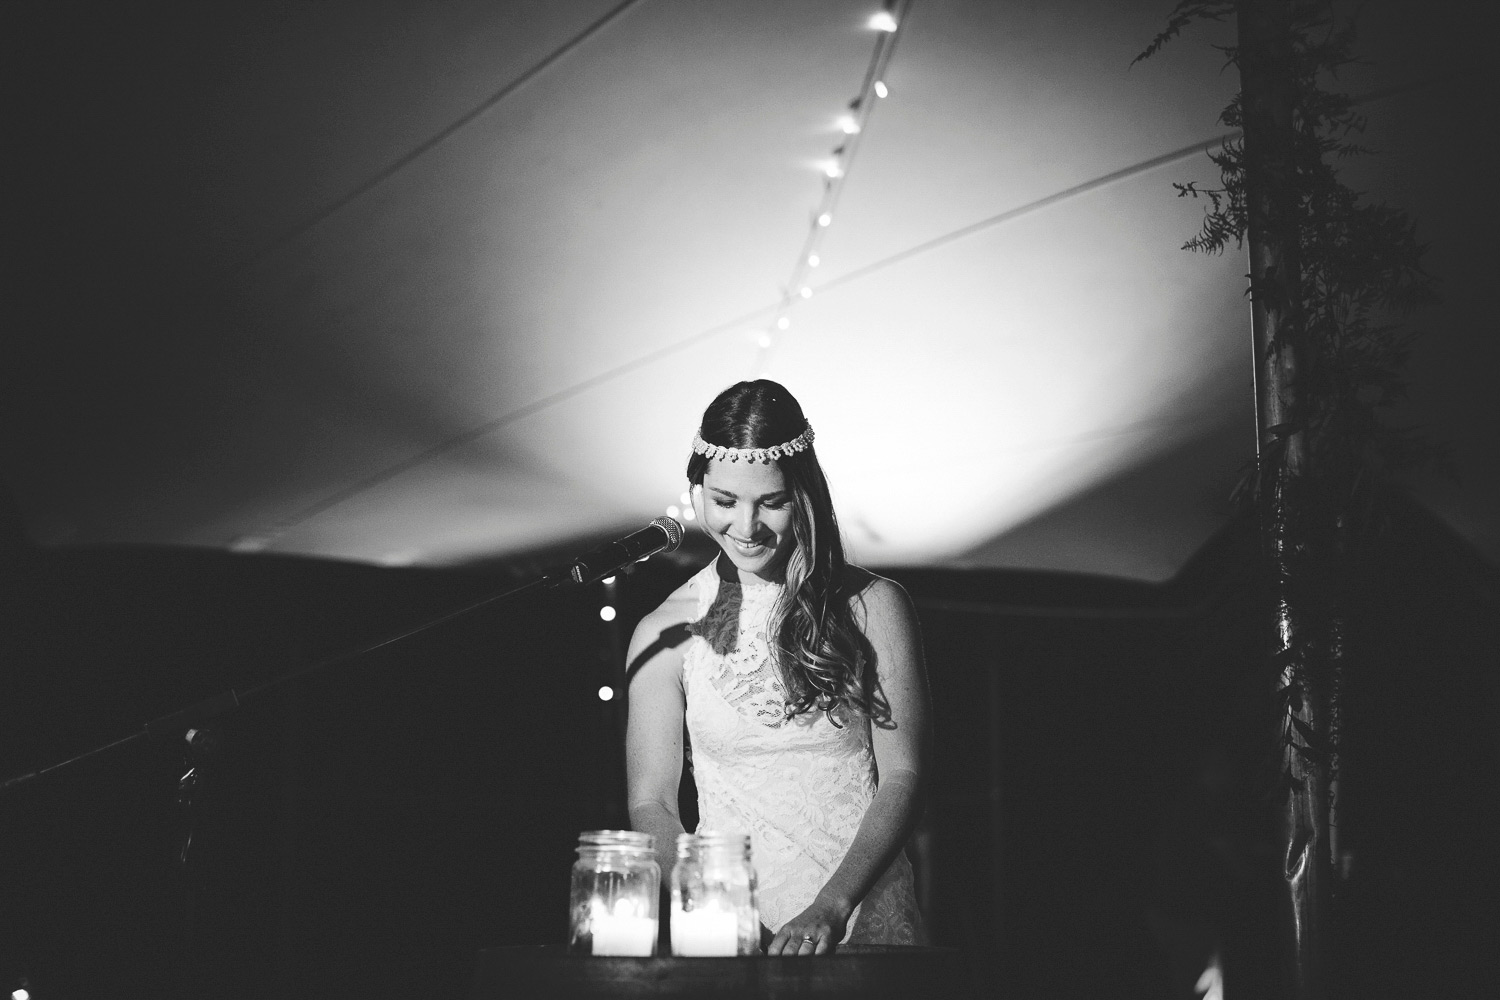 cape-town-wedding-photographer-western-cape-constansia-camilla-charlie-ray113.jpg